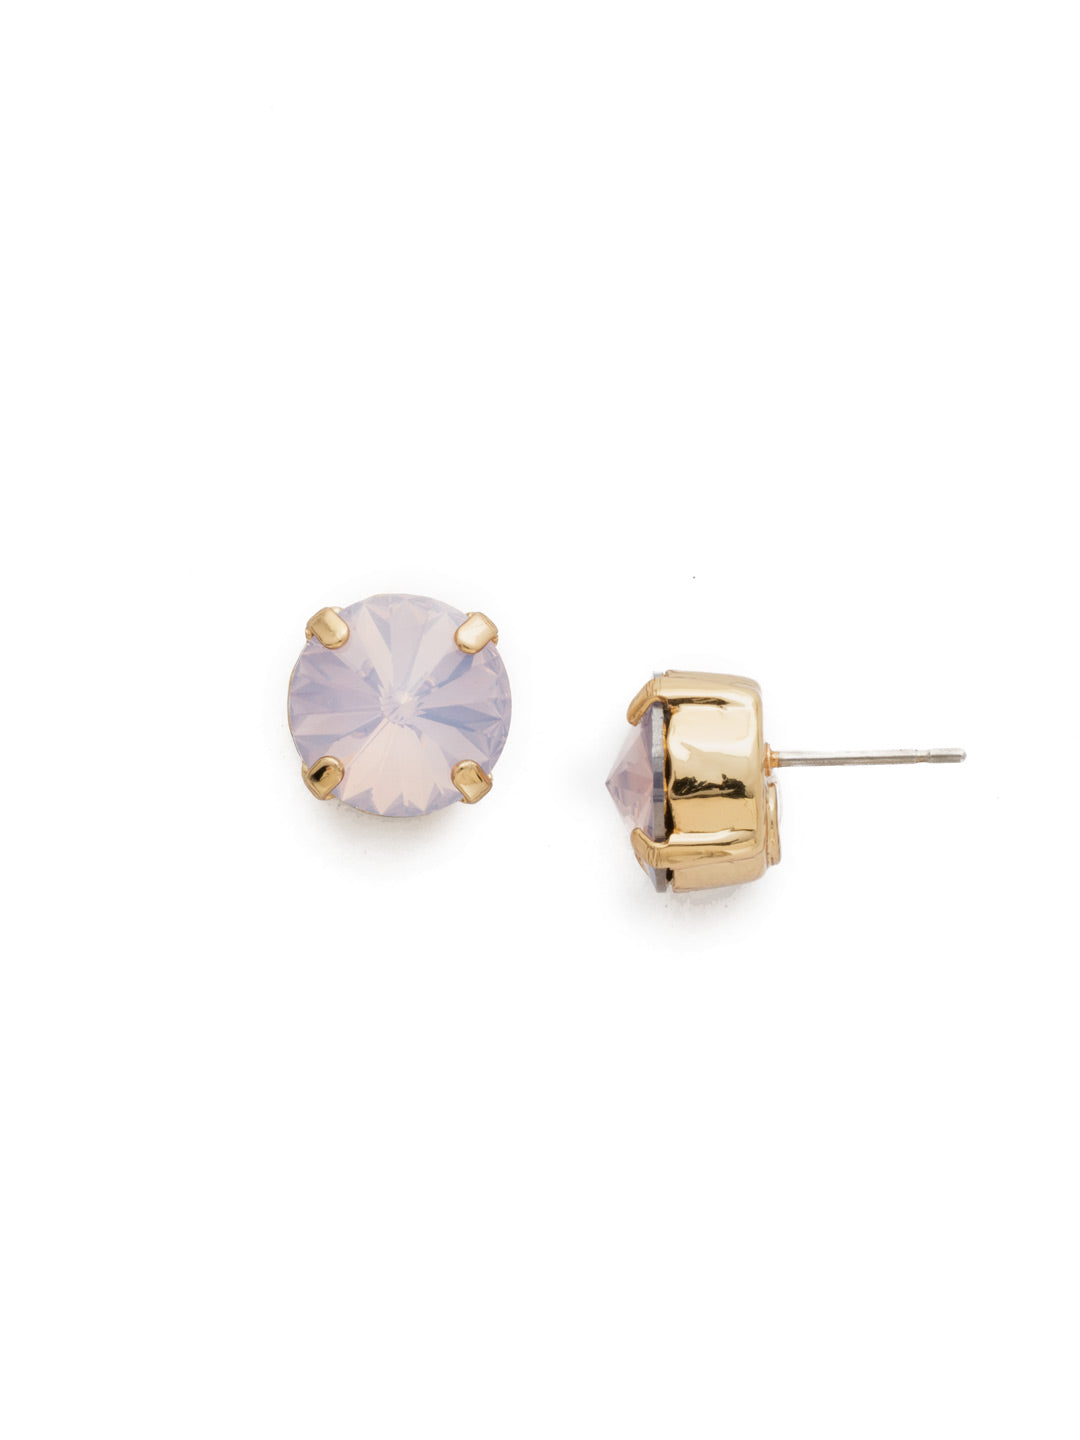 Round Crystal Stud Earrings - ECM14BGROW